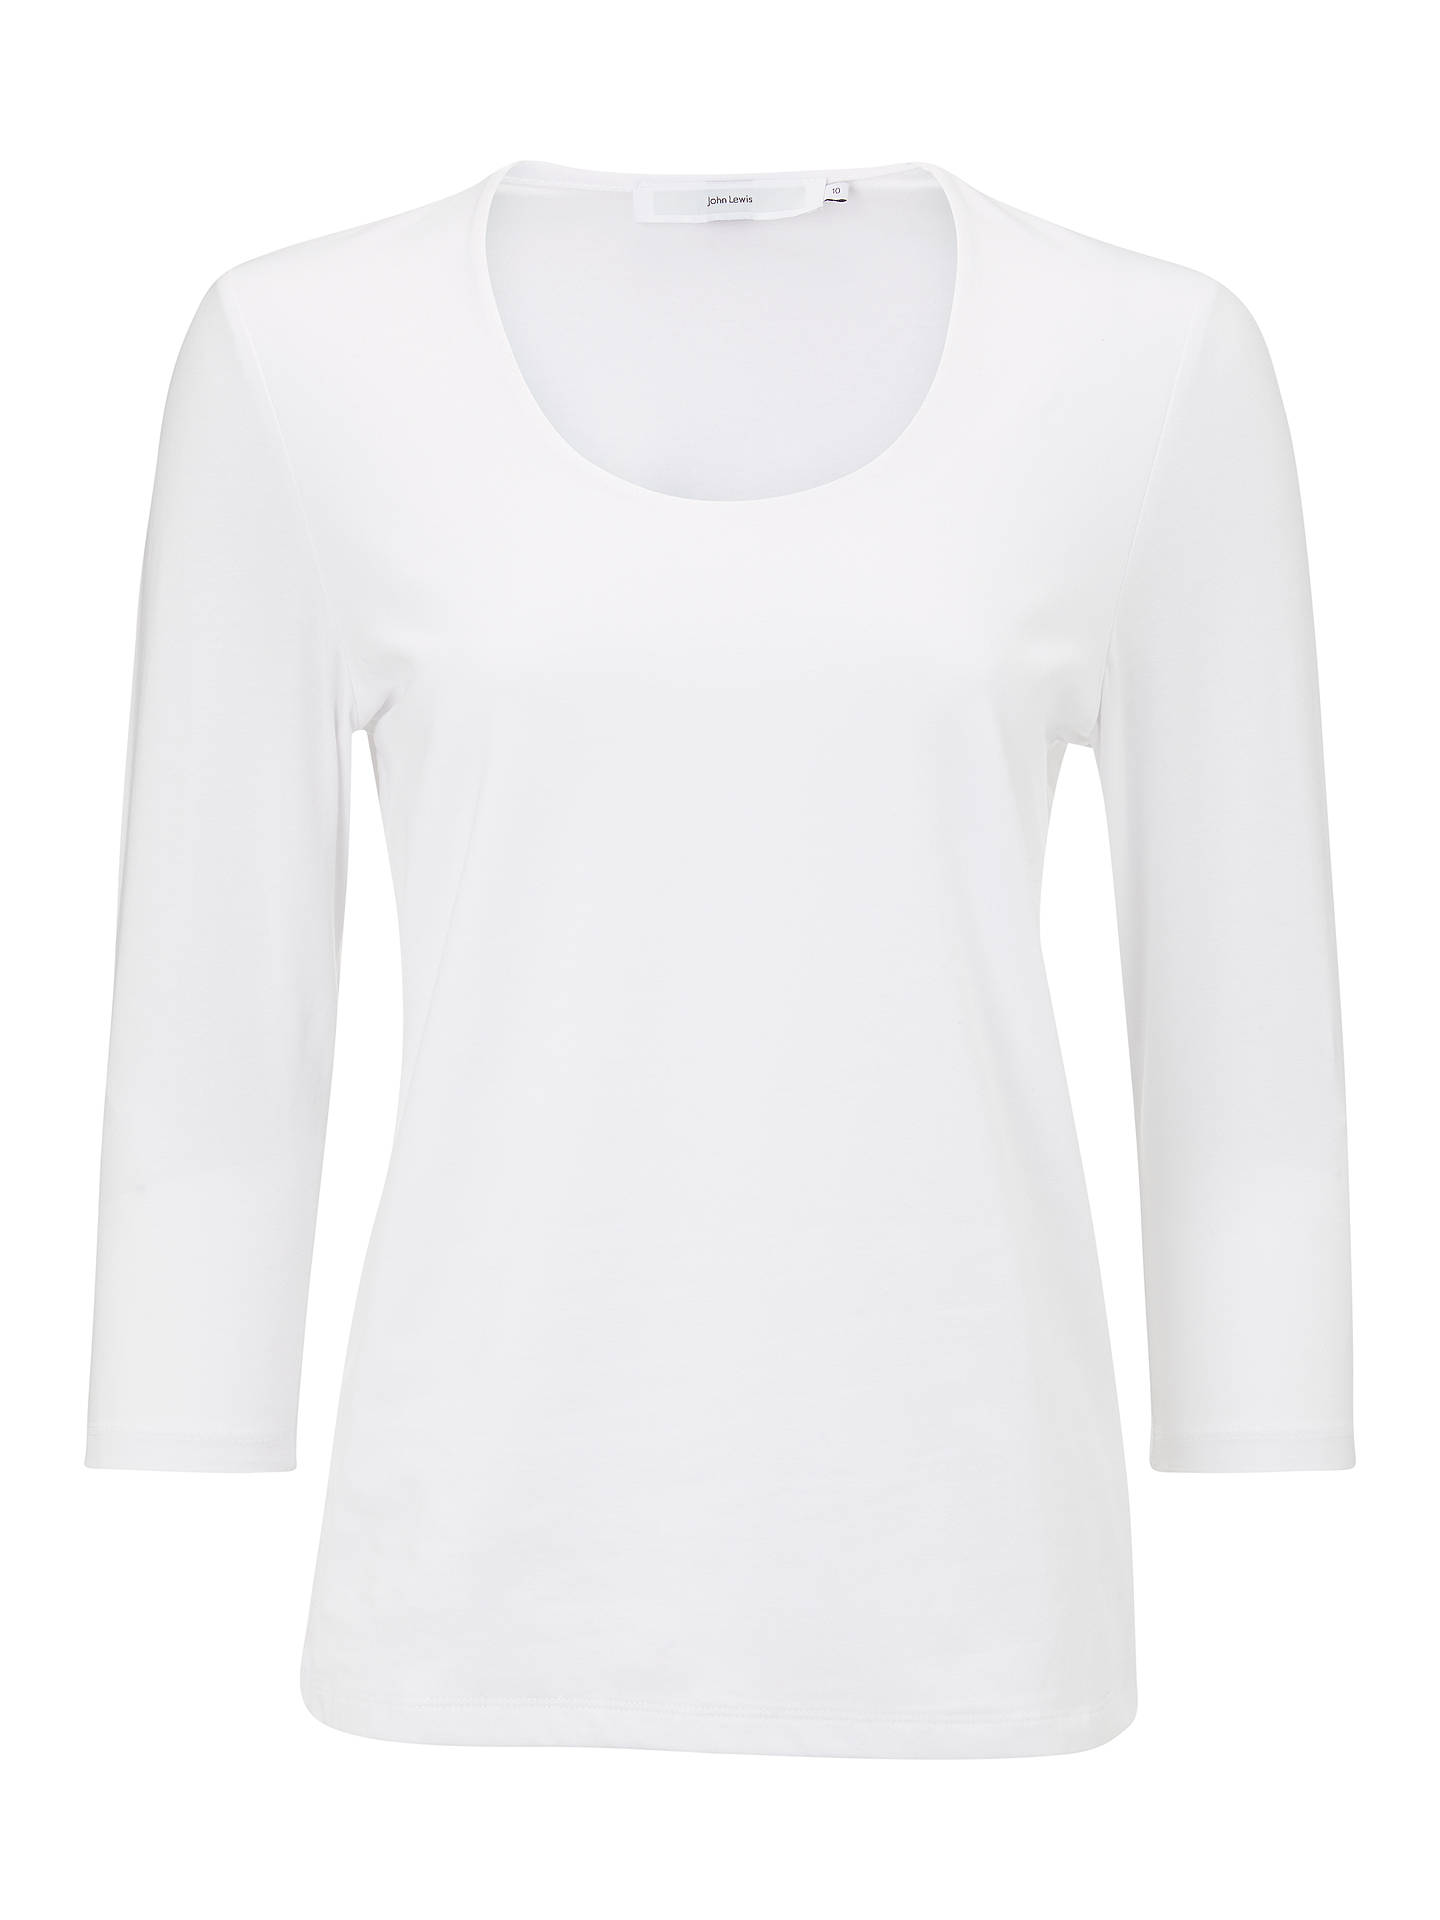 BuyJohn Lewis & Partners 3/4 Sleeve Double Front Scoop T-Shirt, White, 8 Online at johnlewis.com